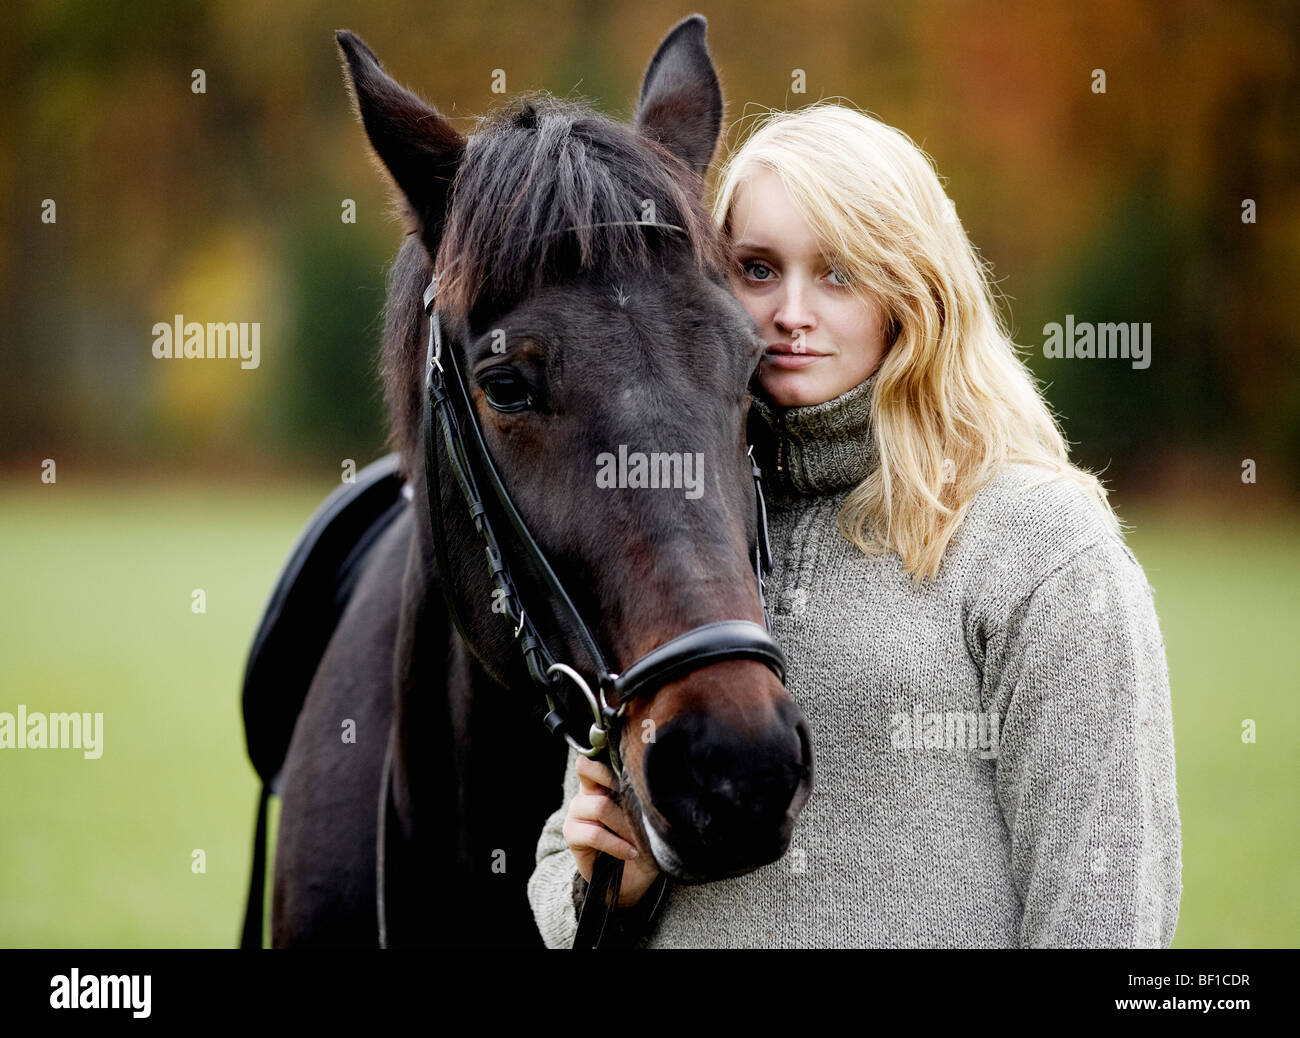 A woman and a horse, Sweden. - Stock Image